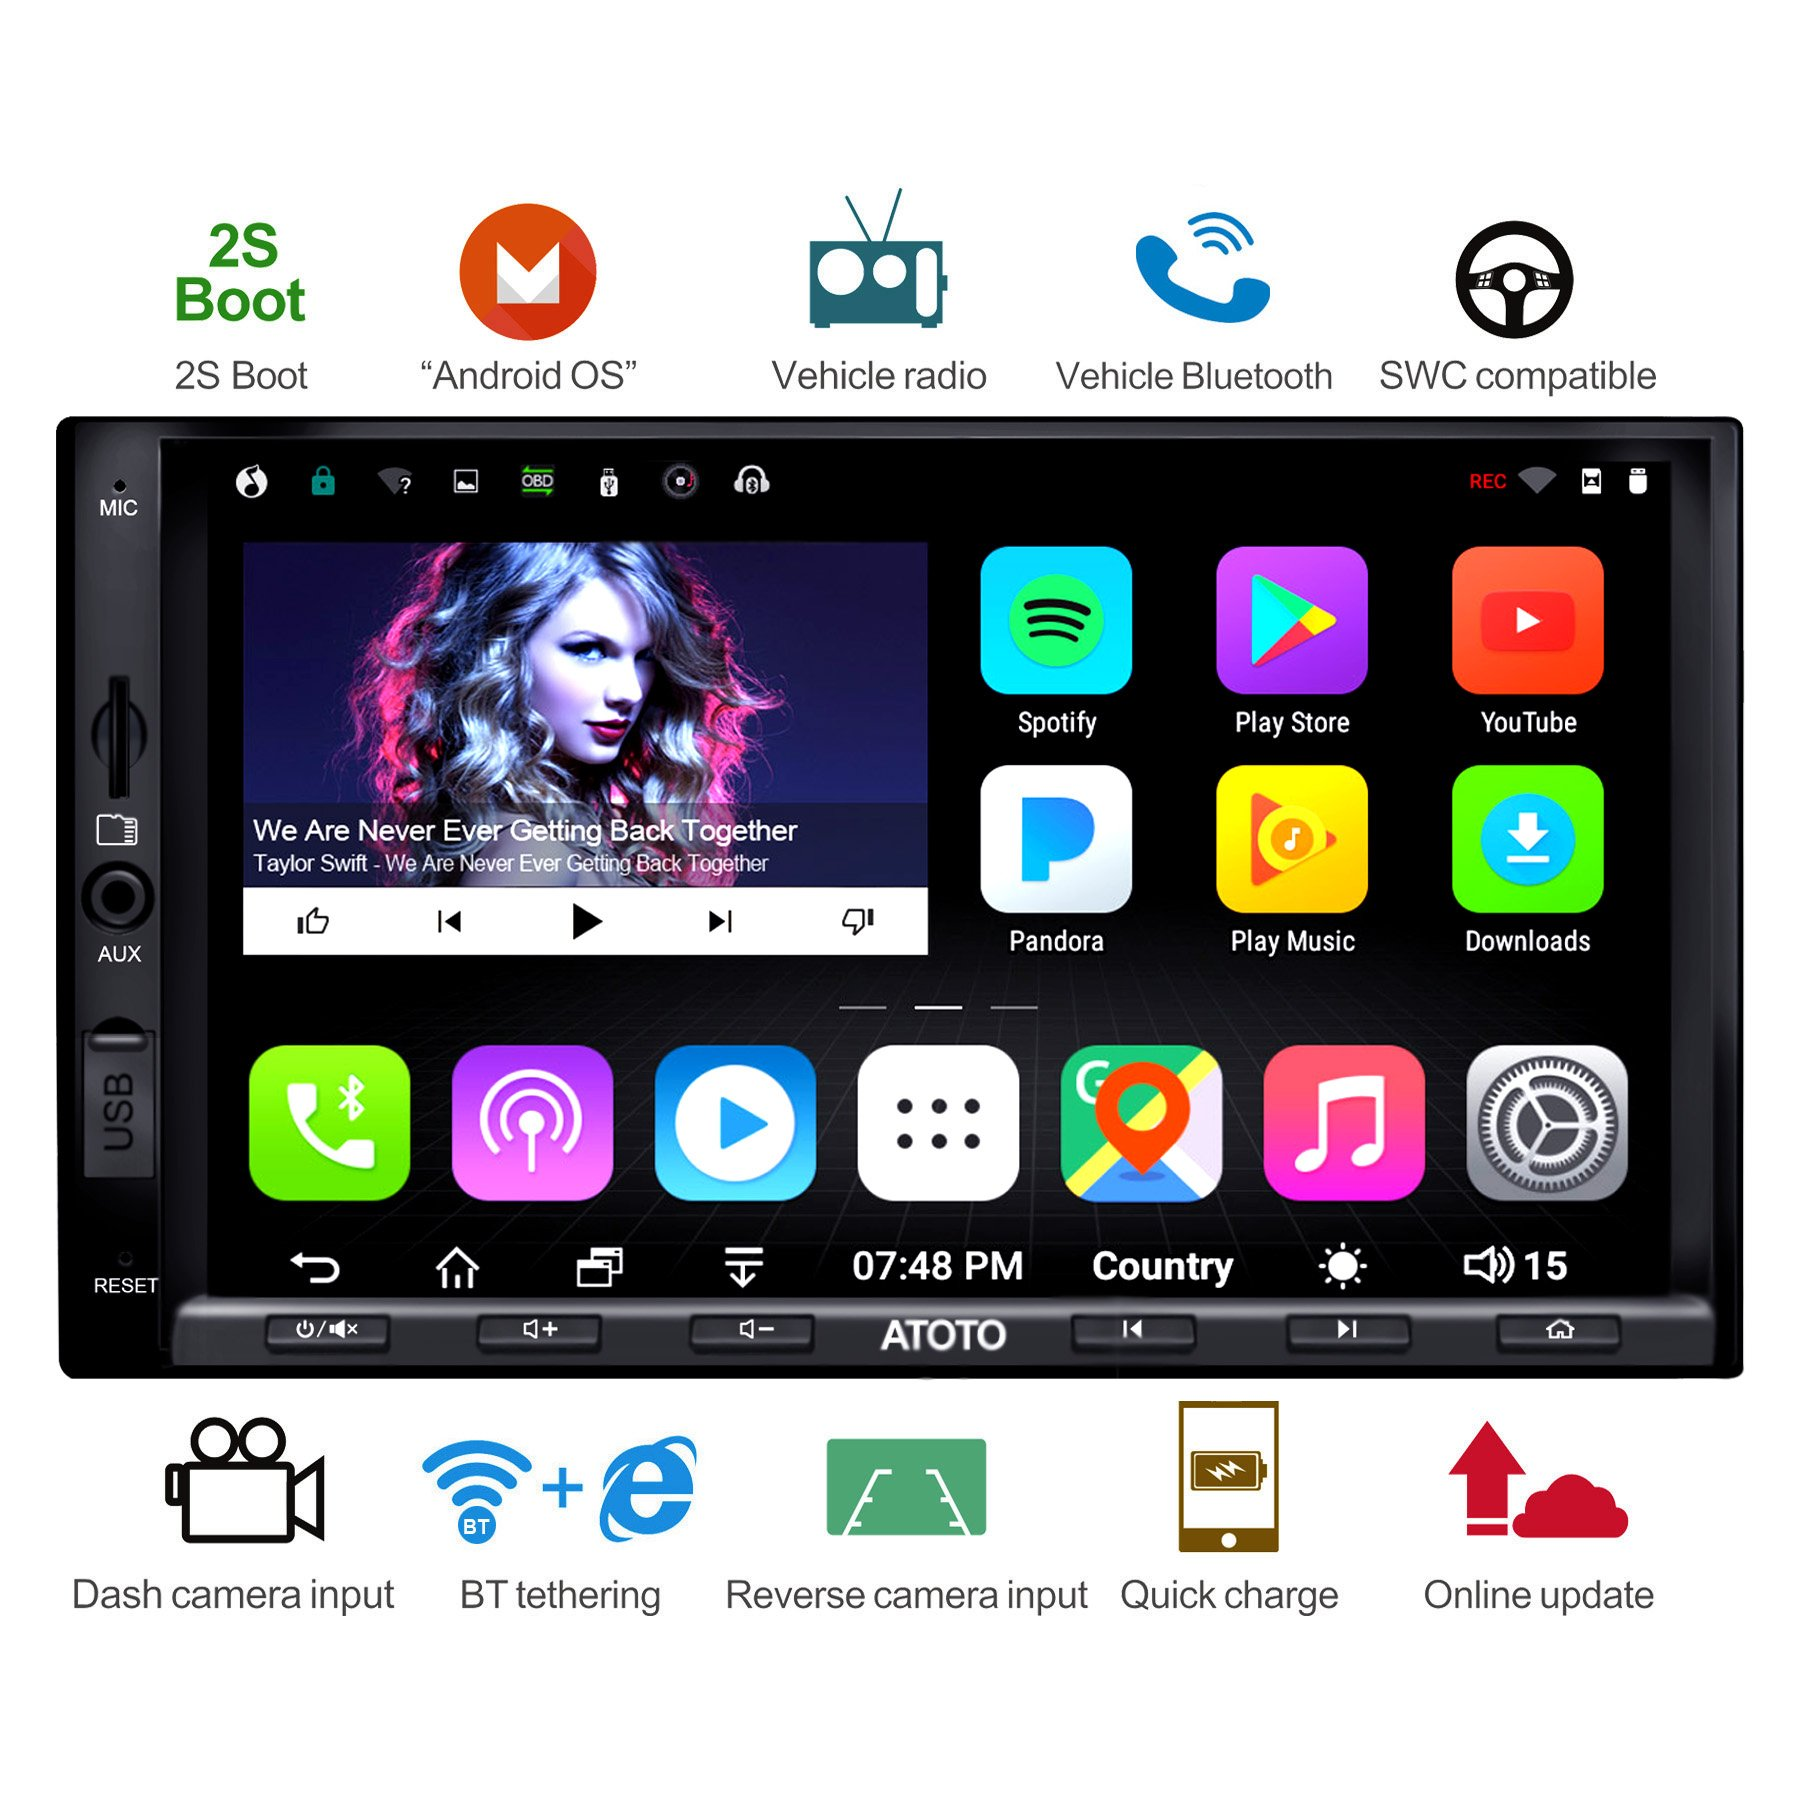 [NEW] ATOTO A6 2DIN Android Car Navigation Stereo with Dual Bluetooth & 2A  Charge -Premium A6Y2721PB 2G/32G Car Entertainment Multimedia Radio,WiFi/BT